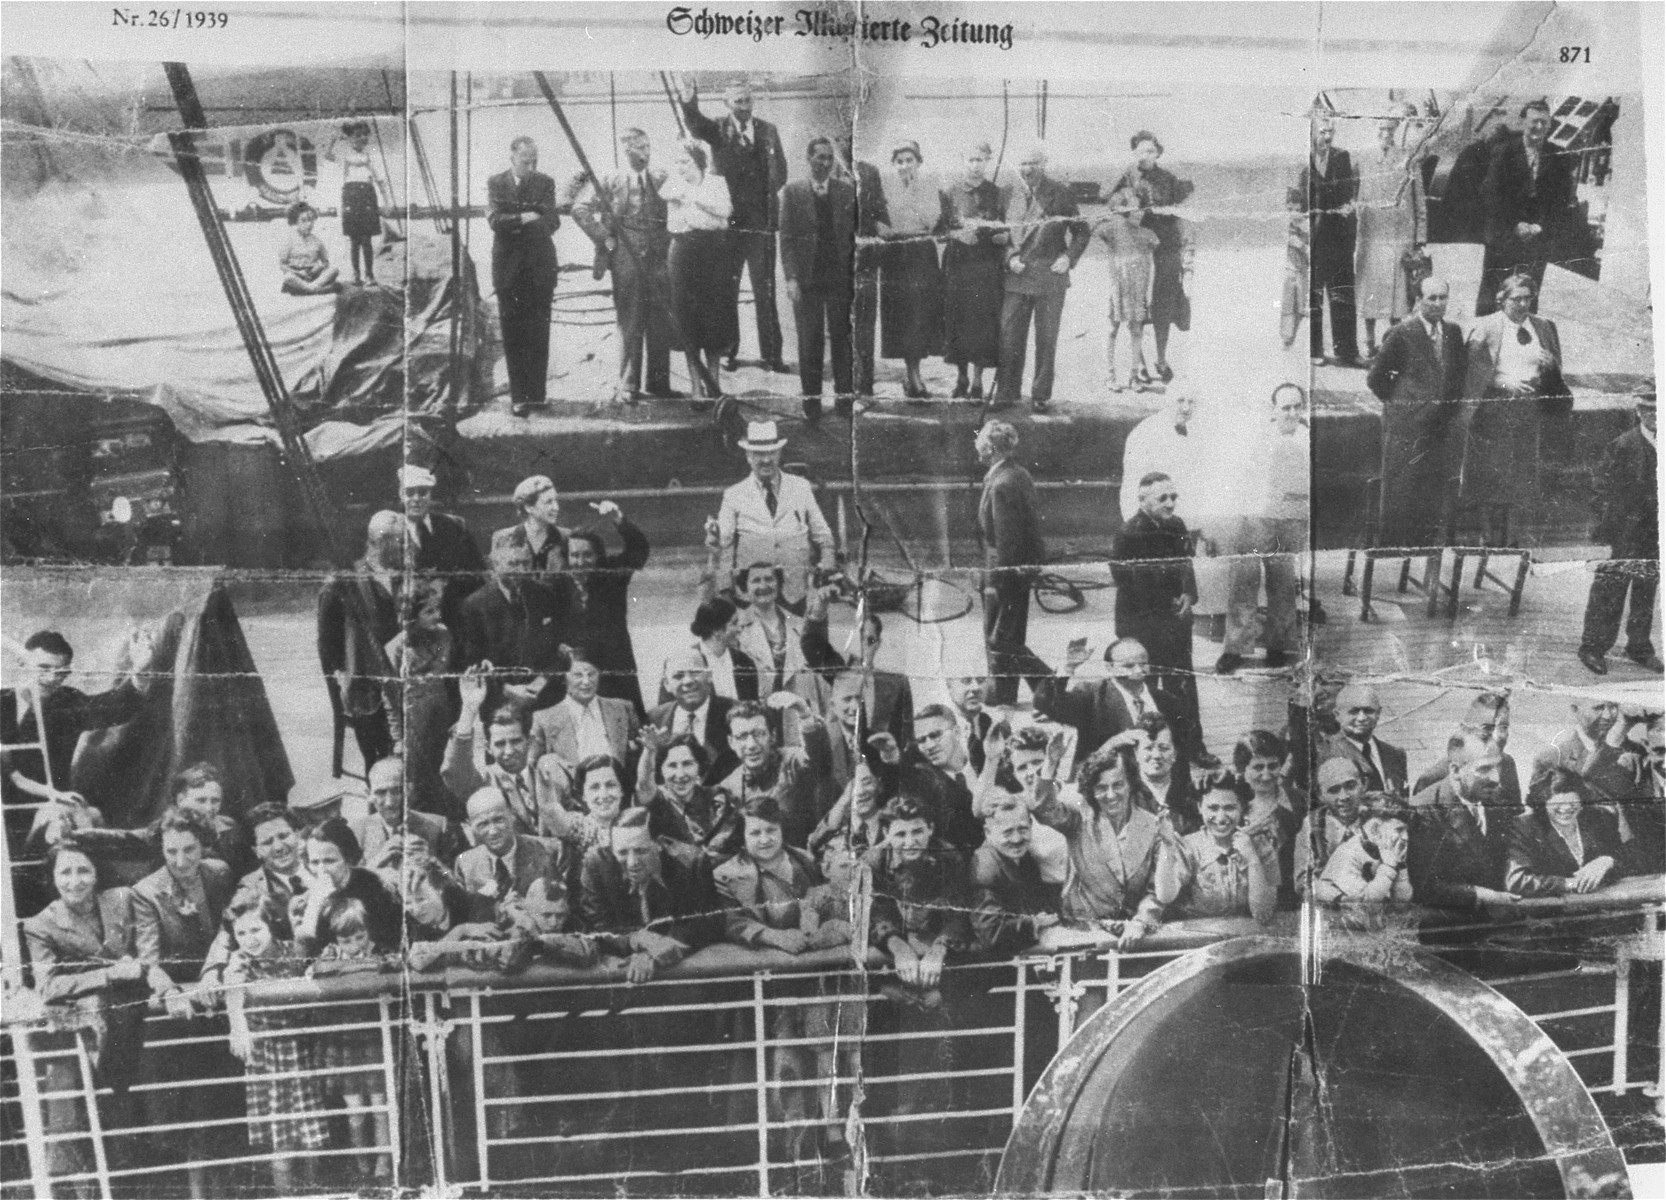 Passengers crowd the deck of the MS St. Louis.    Among those pictured is Ernst Weil (with glasses) waving from the deck.  Standing in the back on a raised section, the fifth and sixth people from the left are mother and daughter, Elly and Renate Reutlinger.